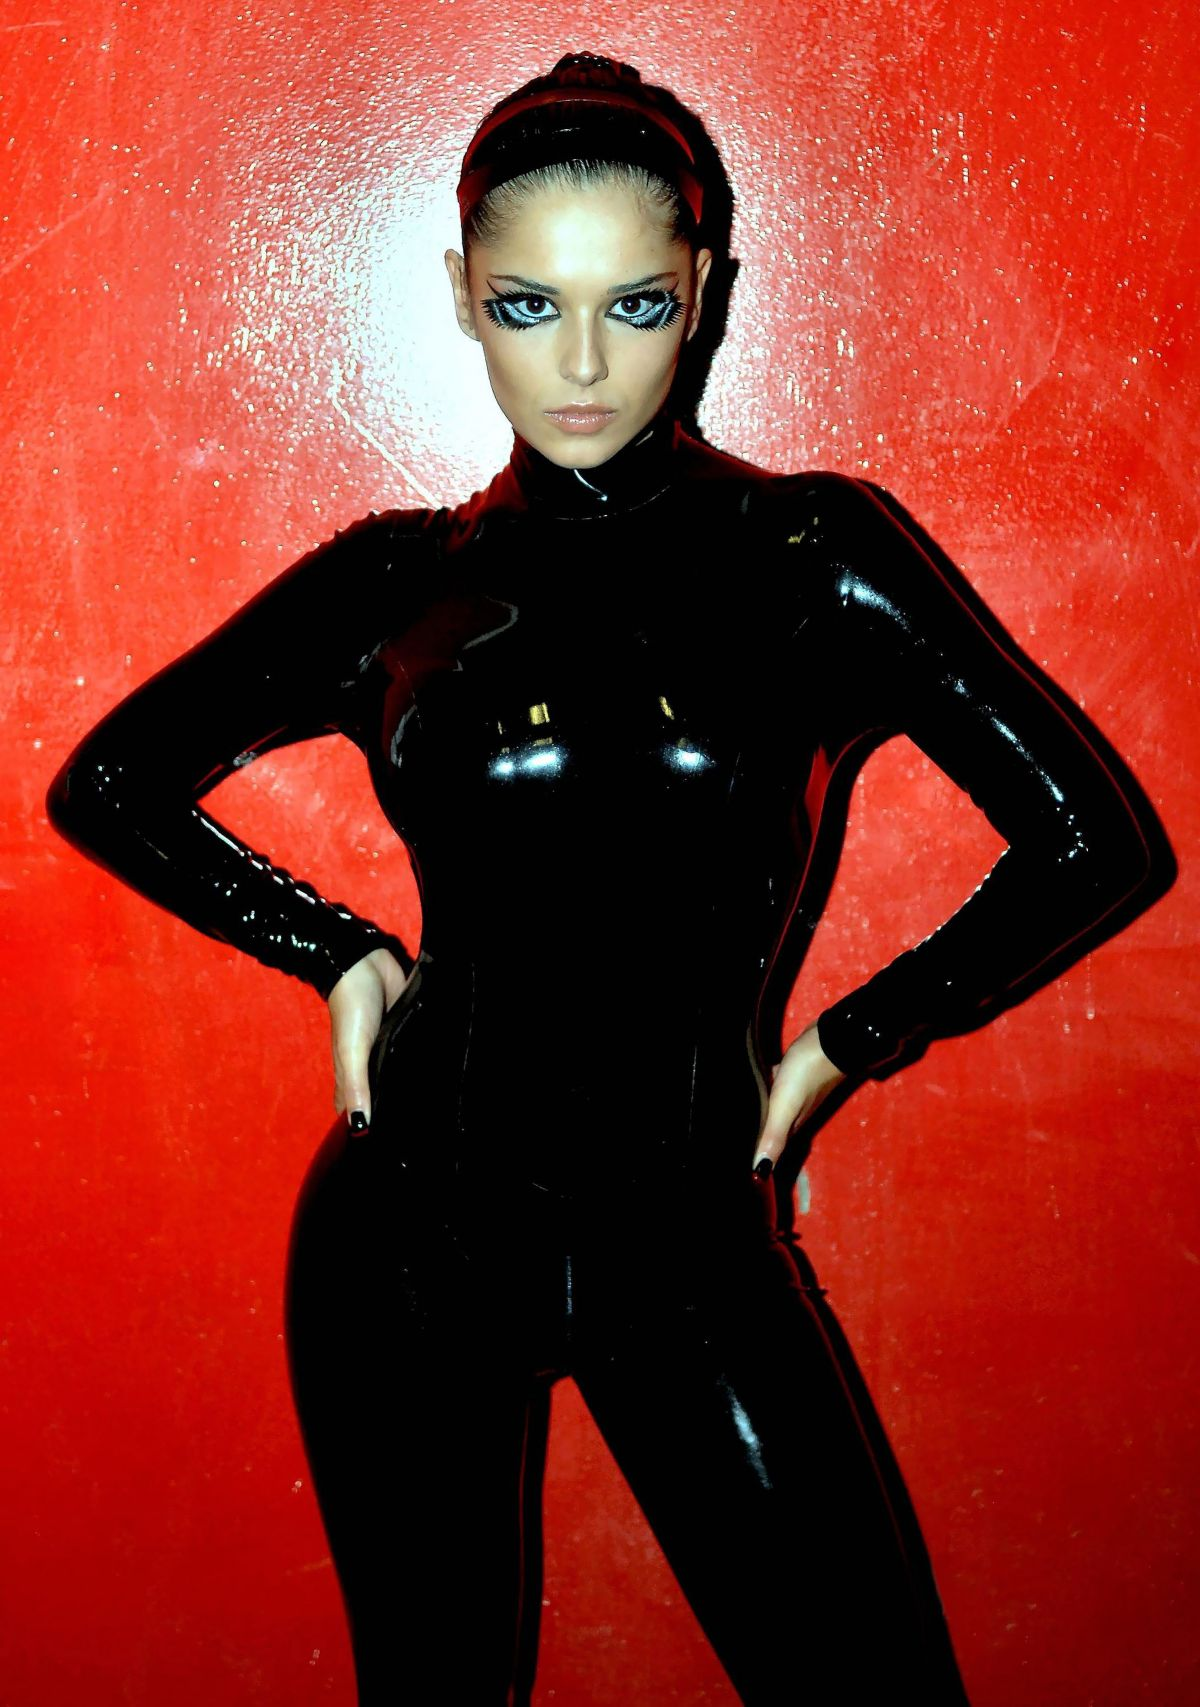 Cheryl Cole Wearing Black Rubber Catsuit